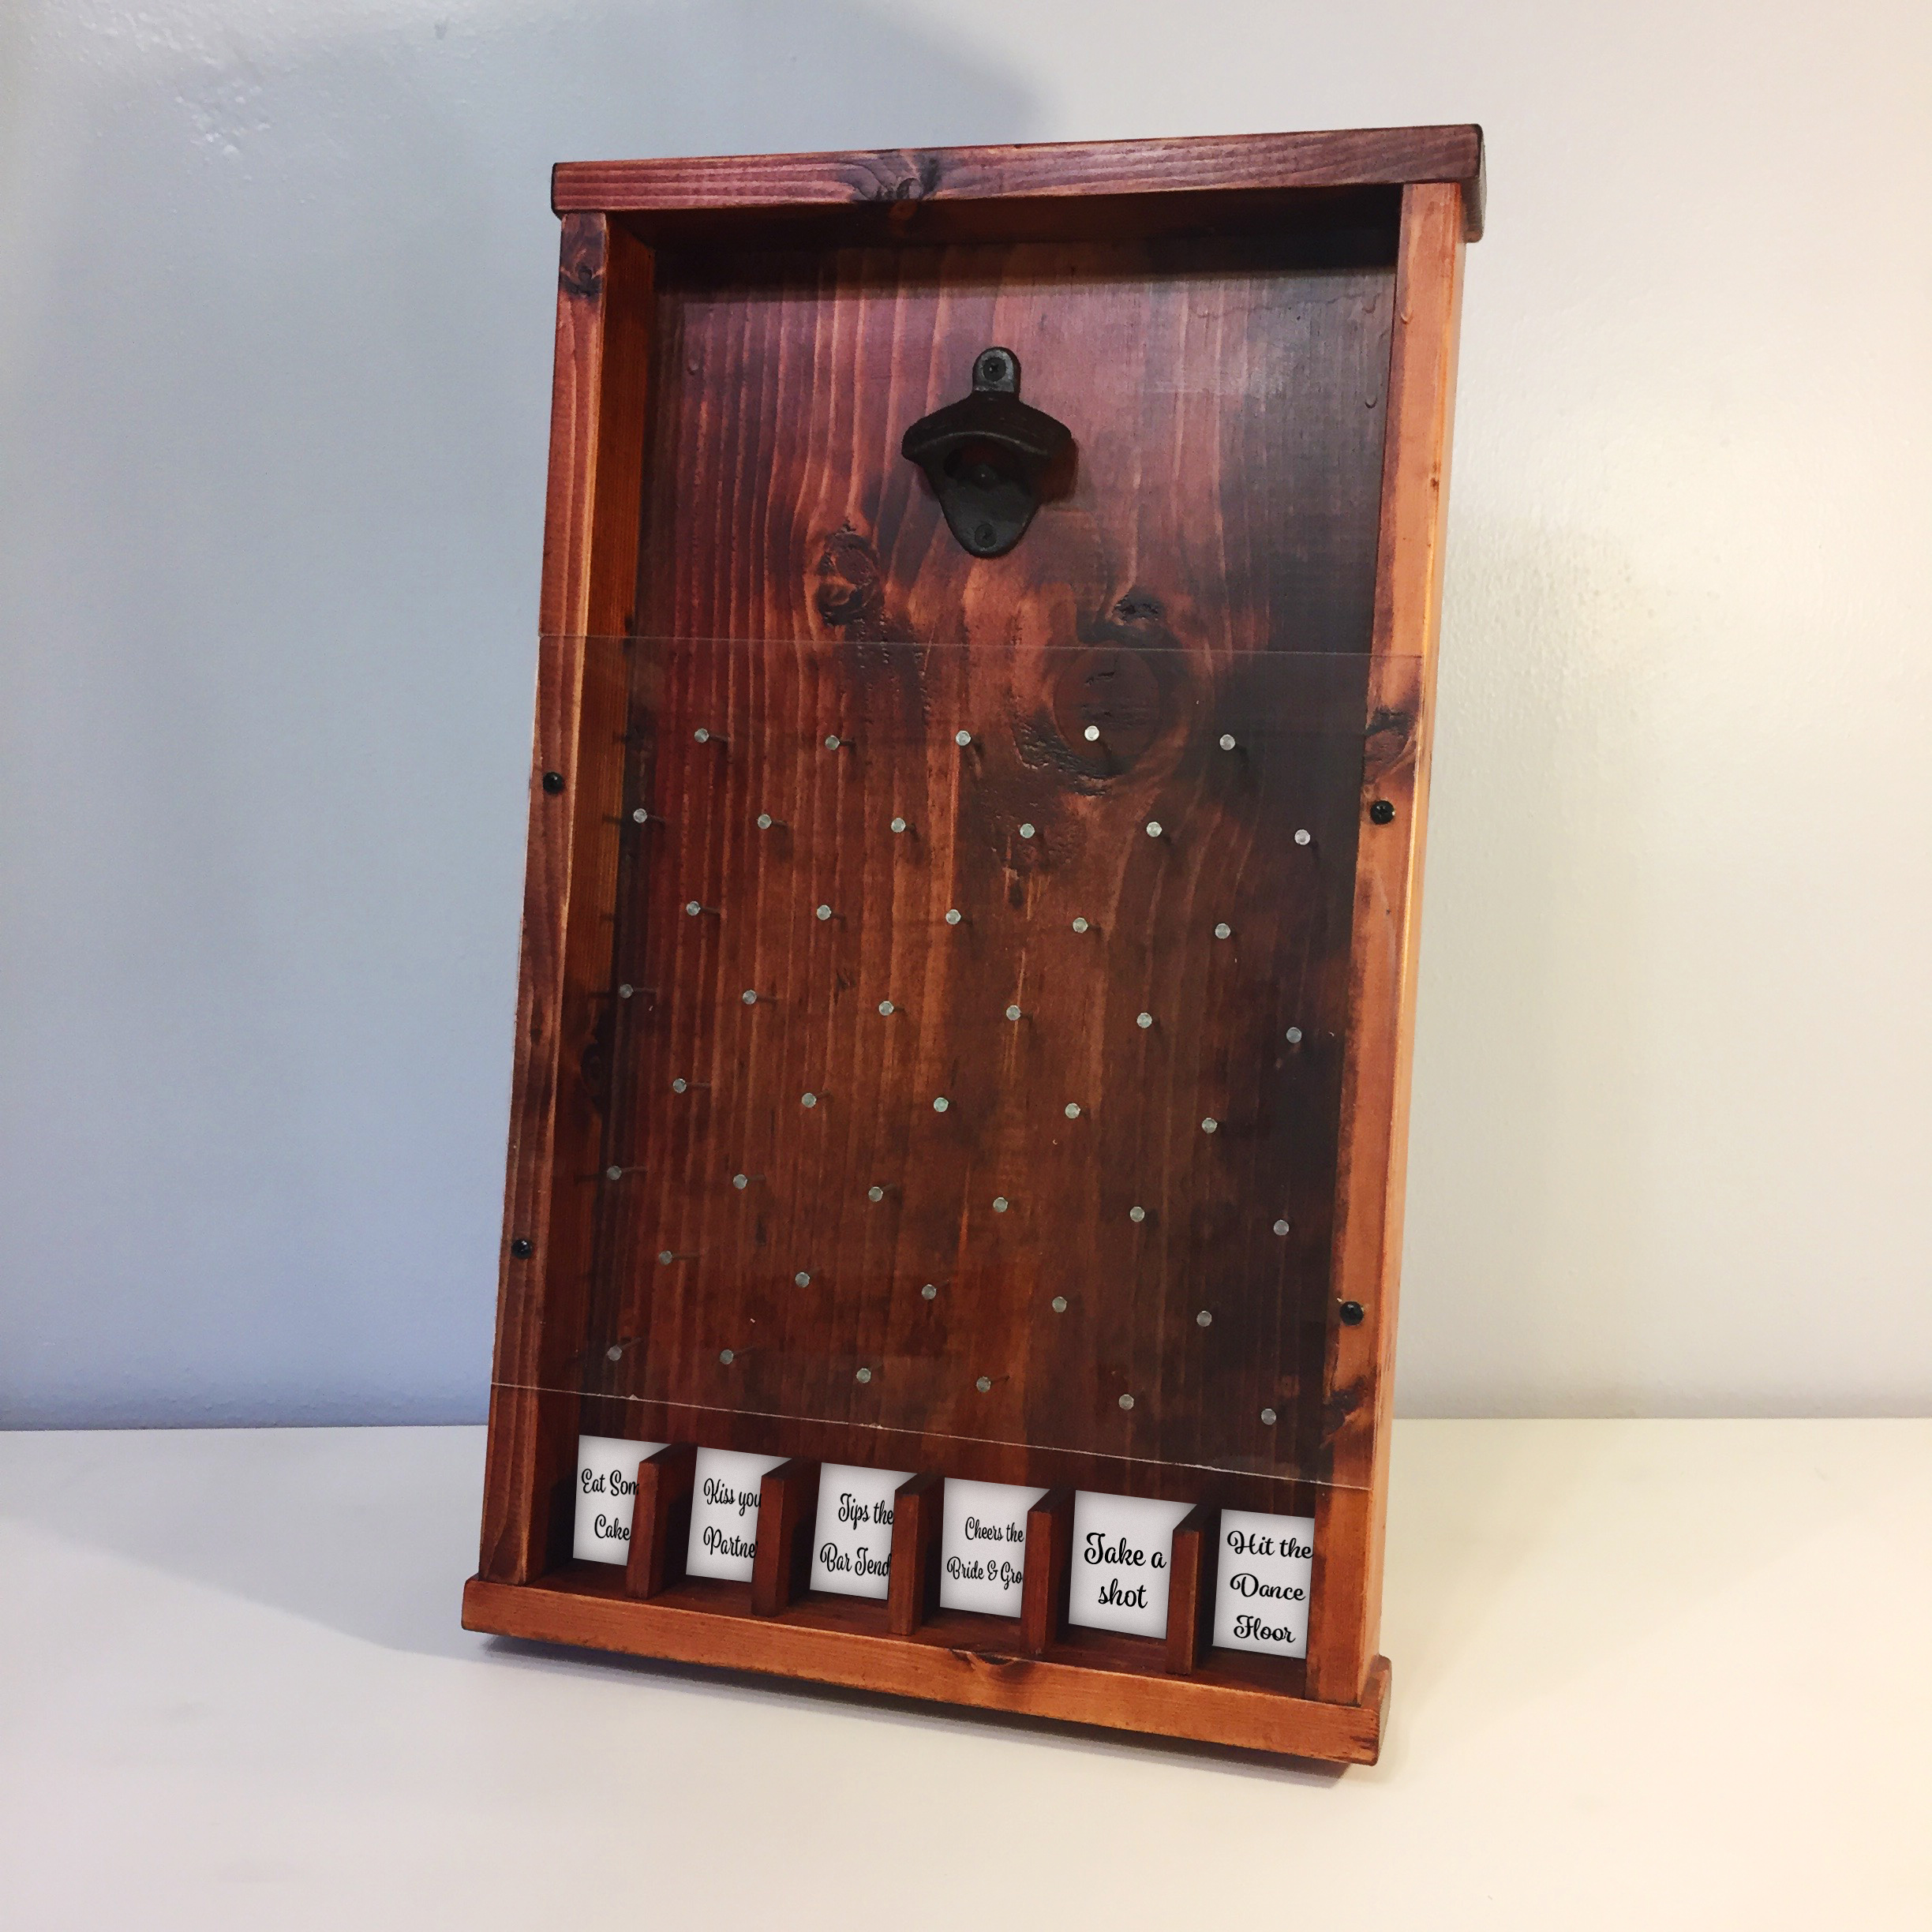 Bottle Cap Plinko Board